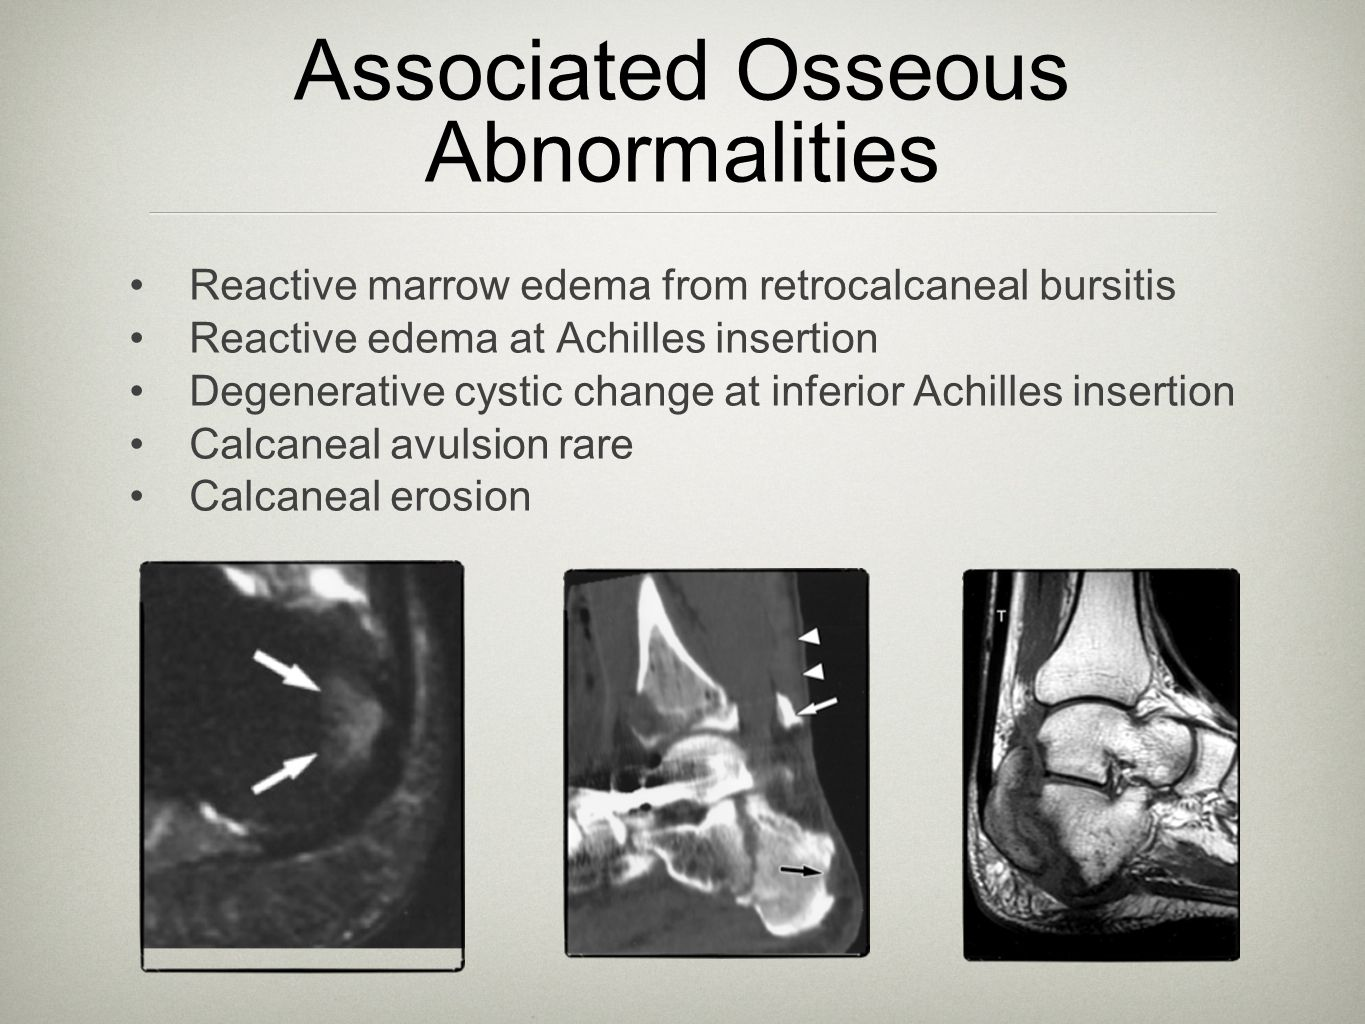 Associated Osseous Abnormalities